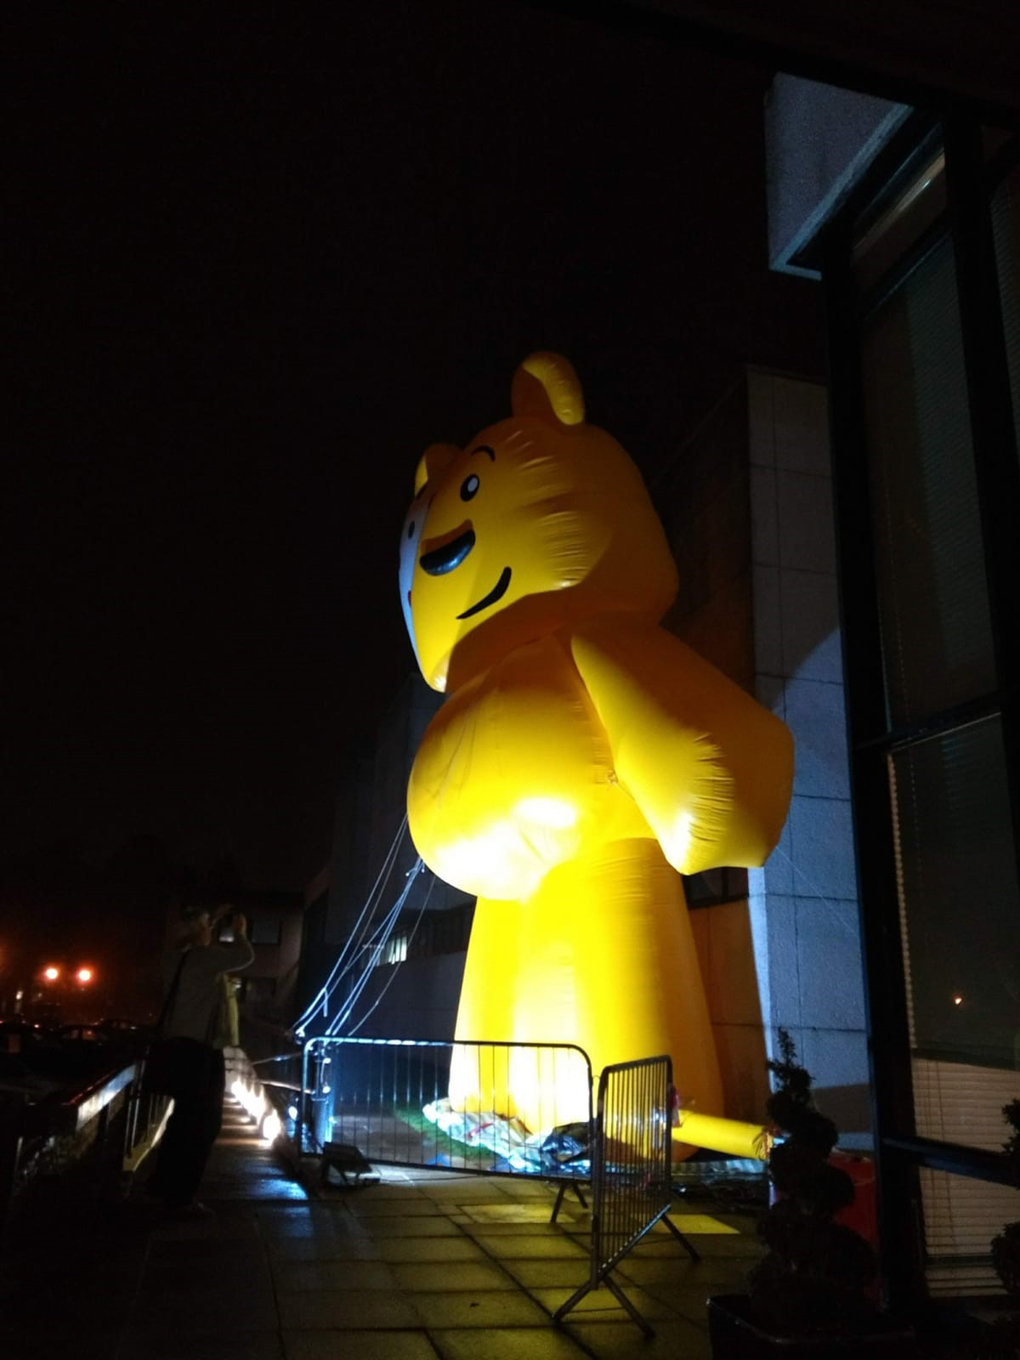 giant bear outside BBC Wales building